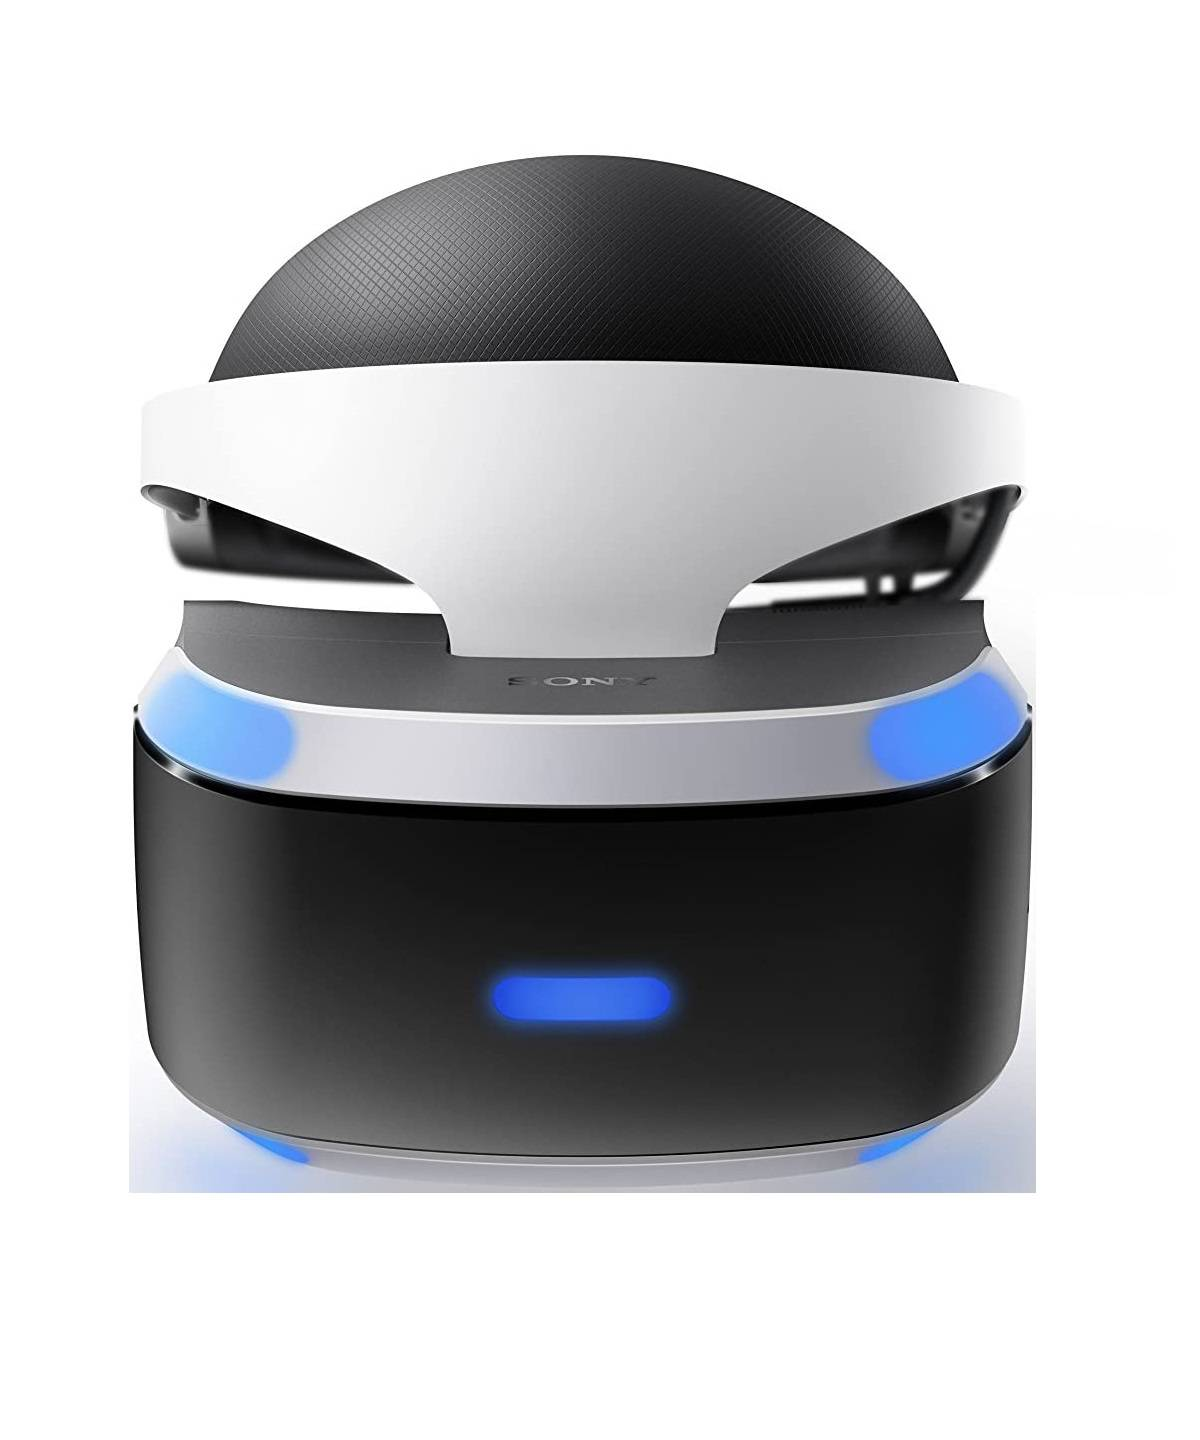 PS VR PlayStation VR immagine verticale